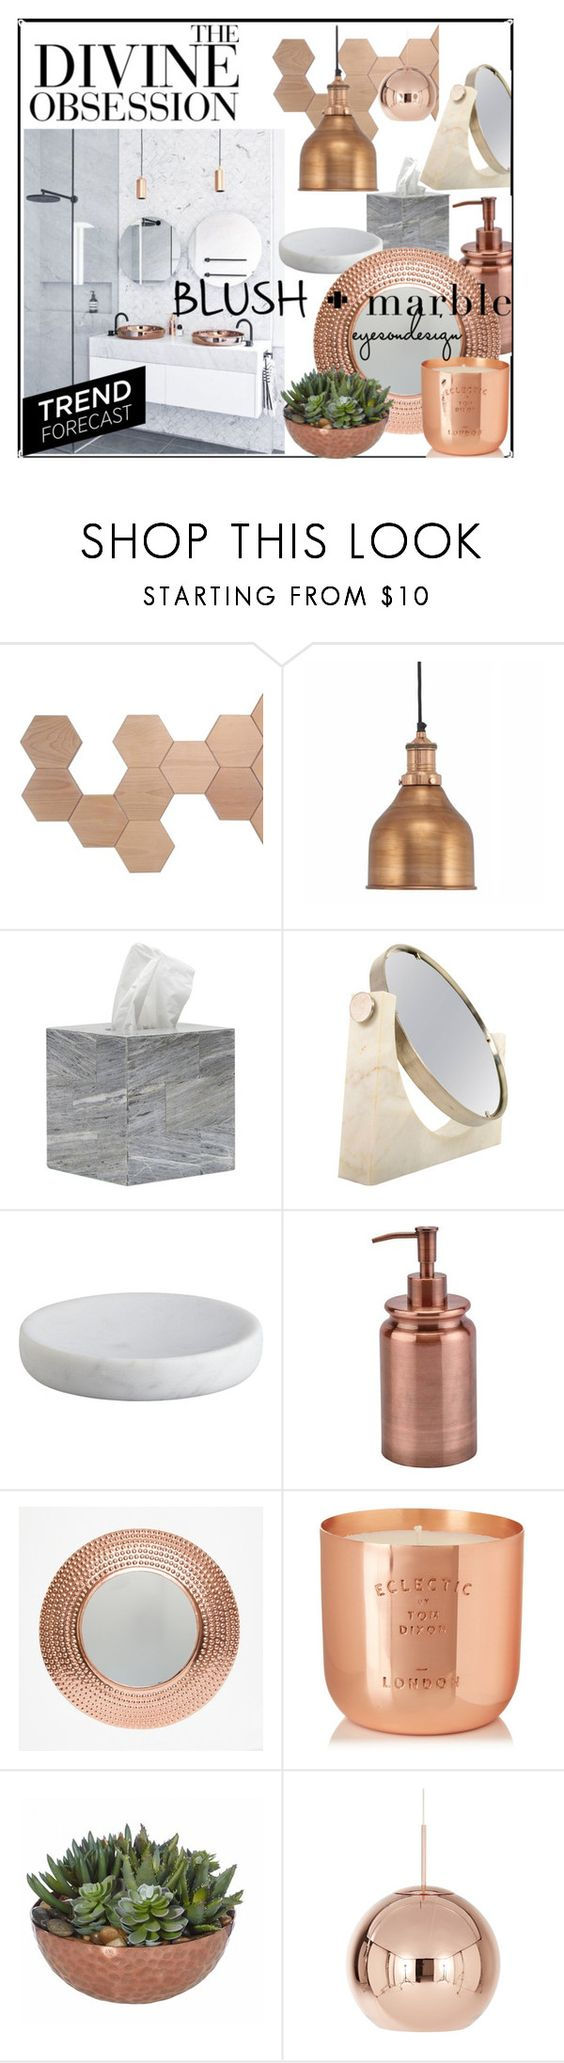 """""""marble + blush bathroom"""" by zerinafe ❤ liked on Polyvore featuring interior, interiors, interior design, home, home decor, interior decorating, Vera Wang, Pigeon & Poodle, CB2 and Aquanova"""